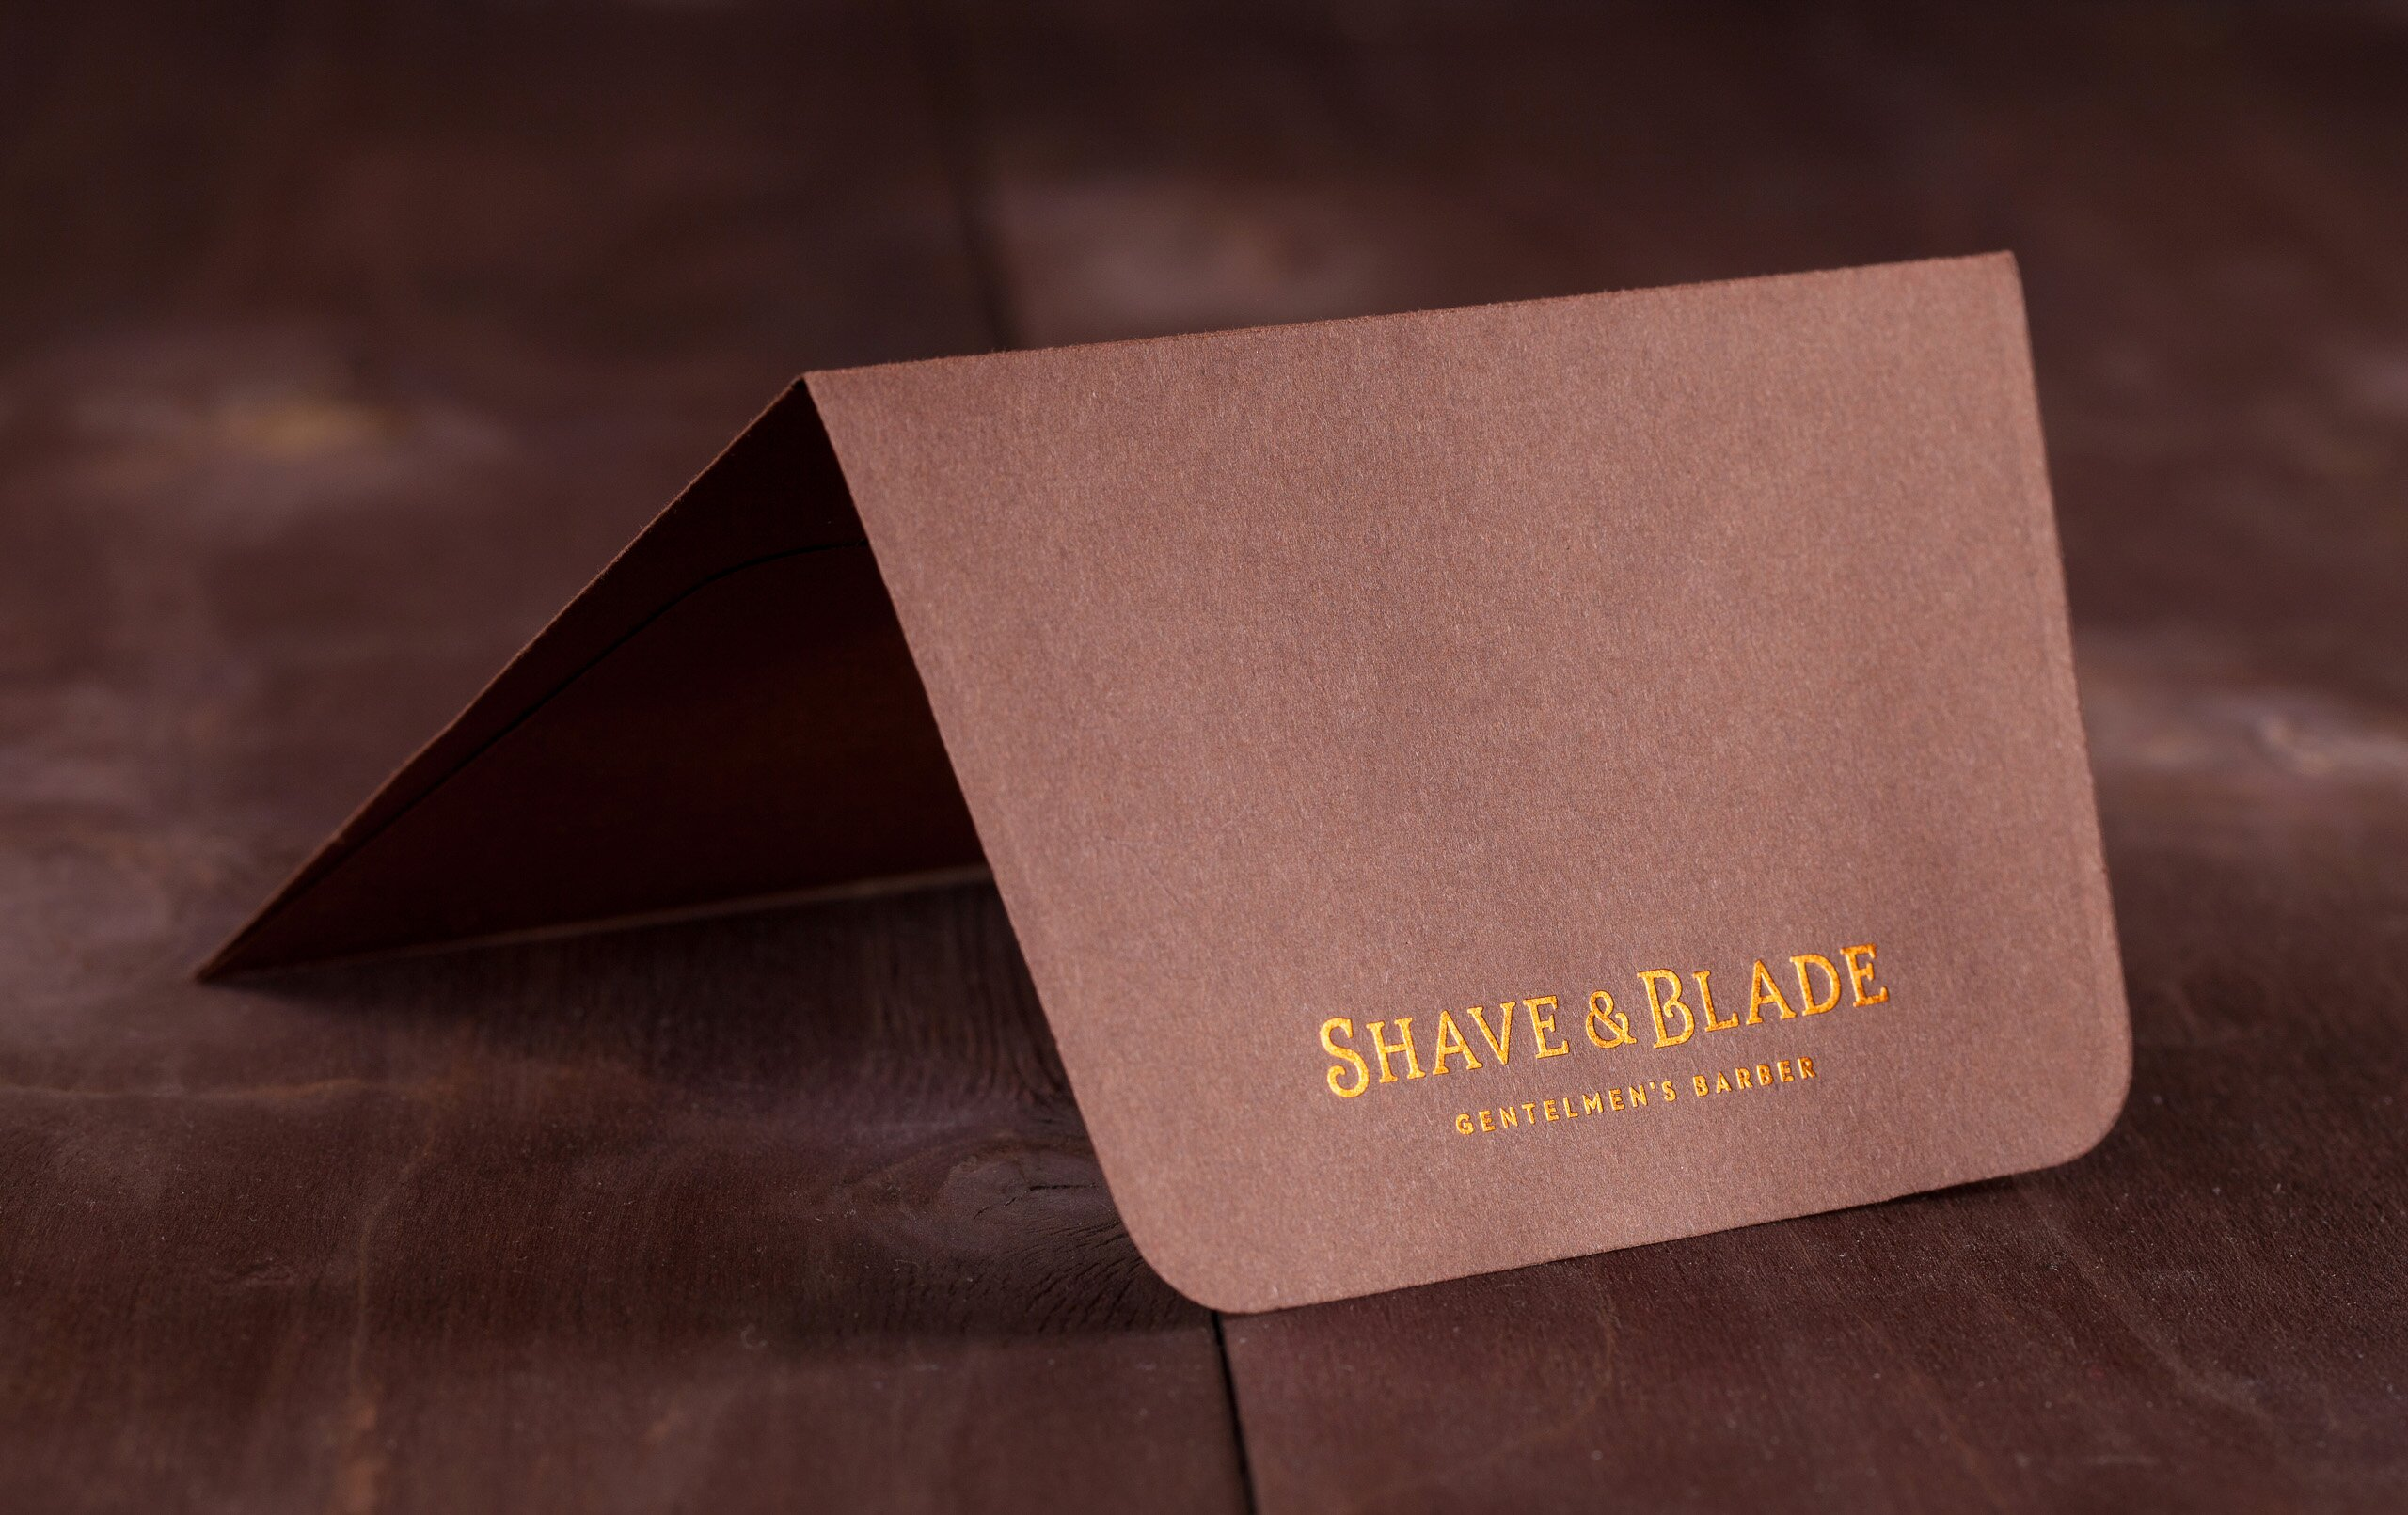 Shave & Blade